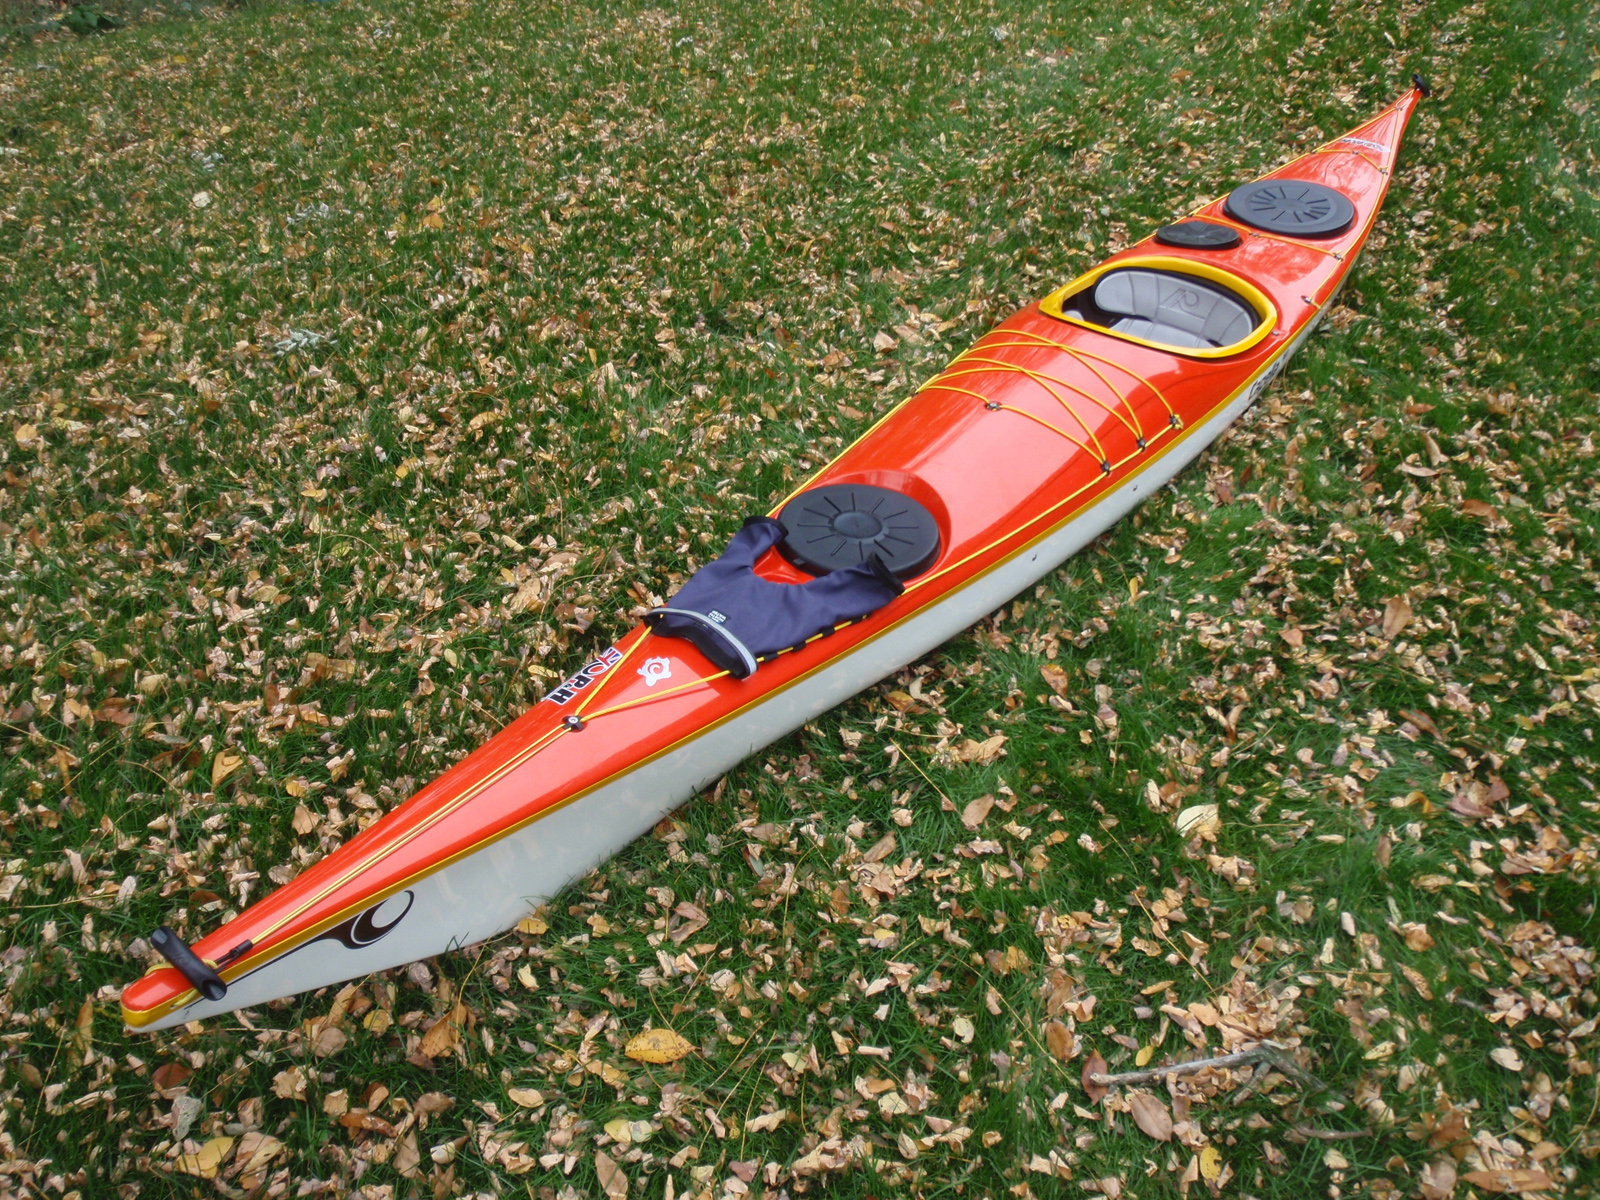 Kayak Mould For Sale And Kayaks For Sale New Kayak For